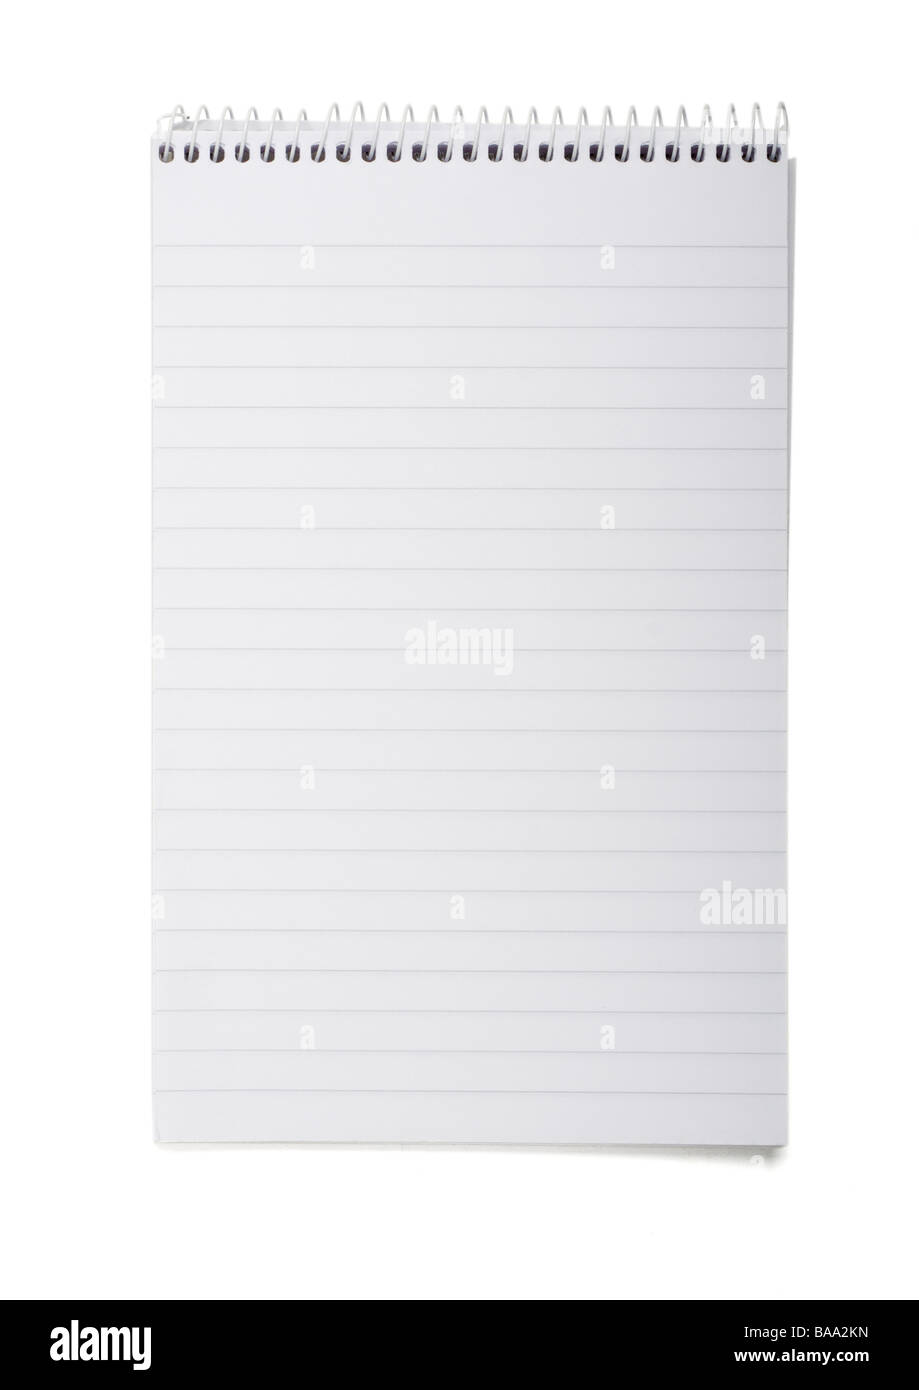 Spiral notepad on white background - Stock Image